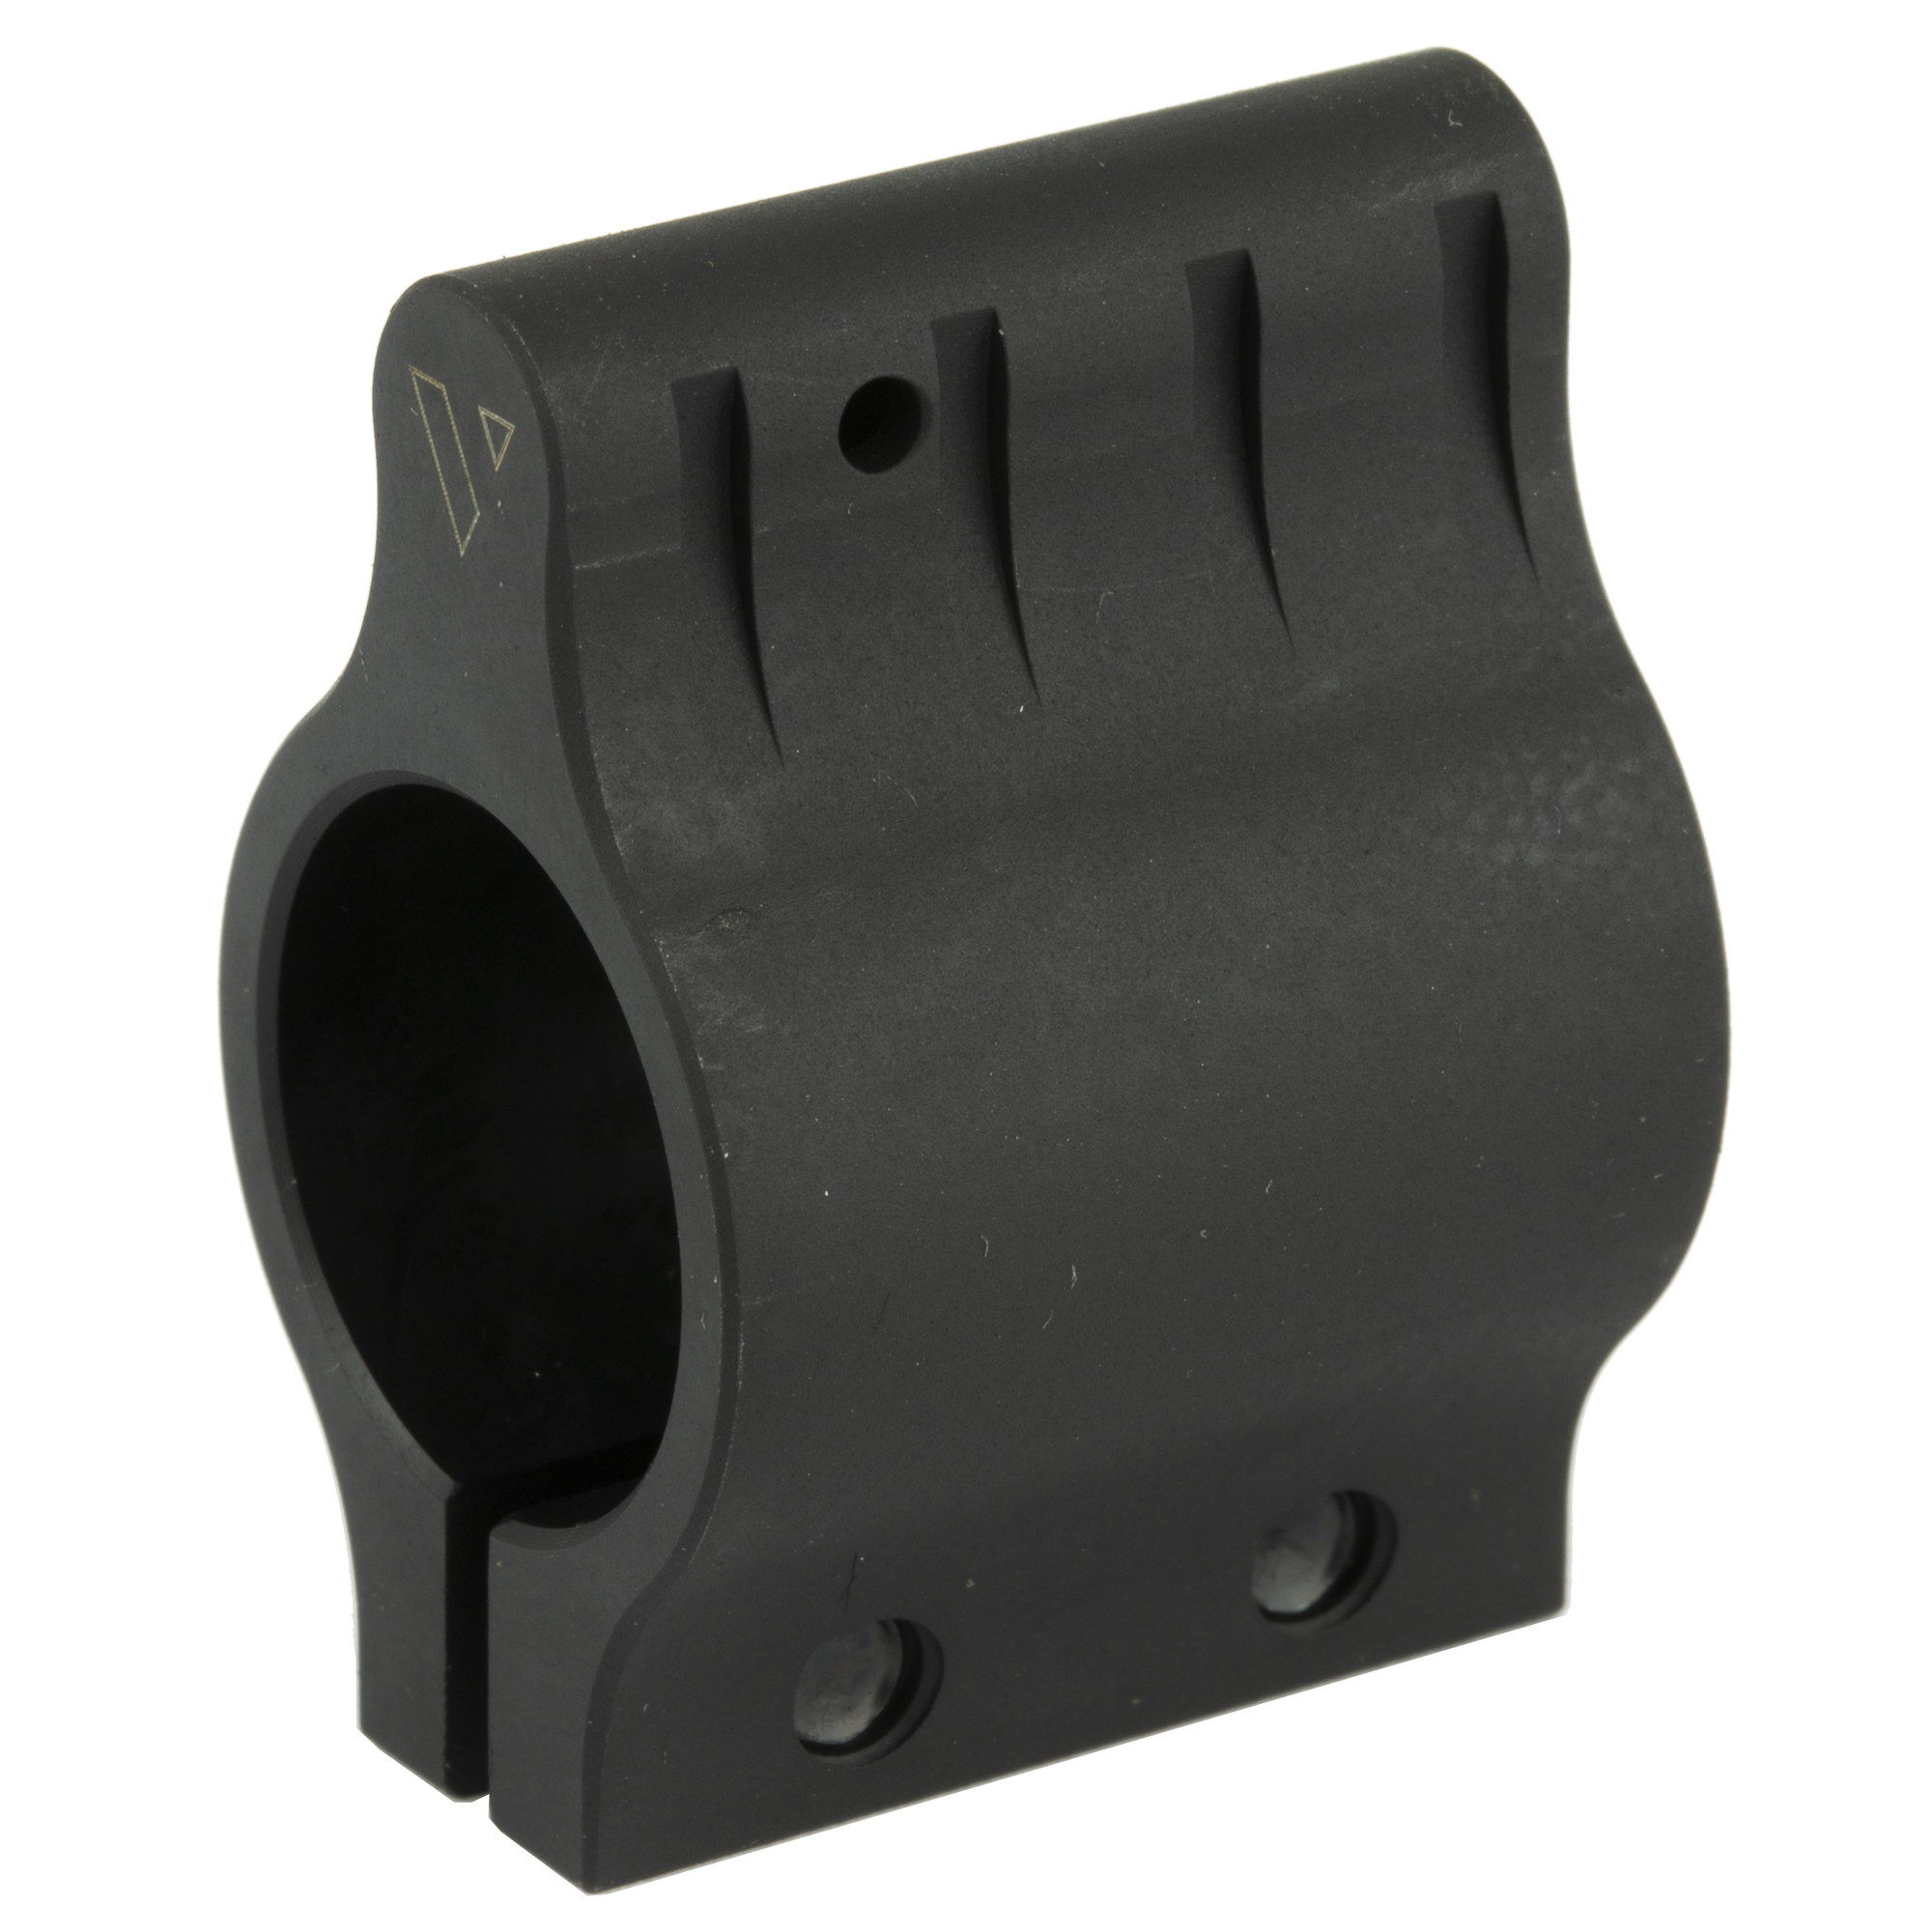 """Built to the tightest tolerances"""" the VLTOR low profile"""" clamp on gas blocks are small enough to fit inside most rail systems. These gas blocks were designed to be used with a rail system/handguard that is mounted over the entire gas system."""